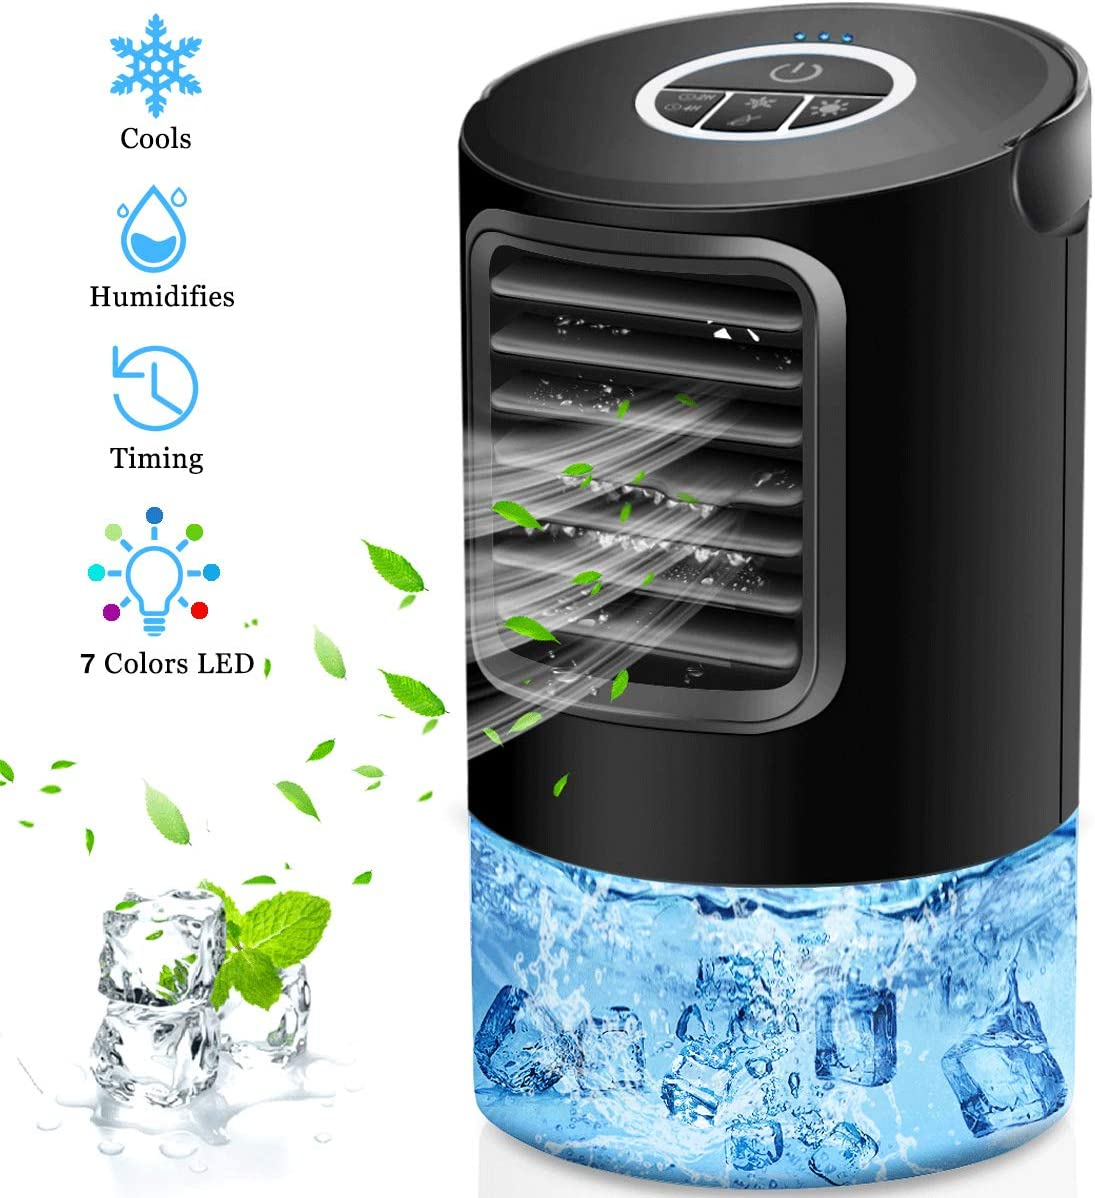 OVPPH Portable Air Conditioner, Personal Air Cooler Fan Desk Fan Space Mini Table Fan Air Circulator Ultra-Quiet Cooling Fan with Handle and 7 Colors LED Lights for Home